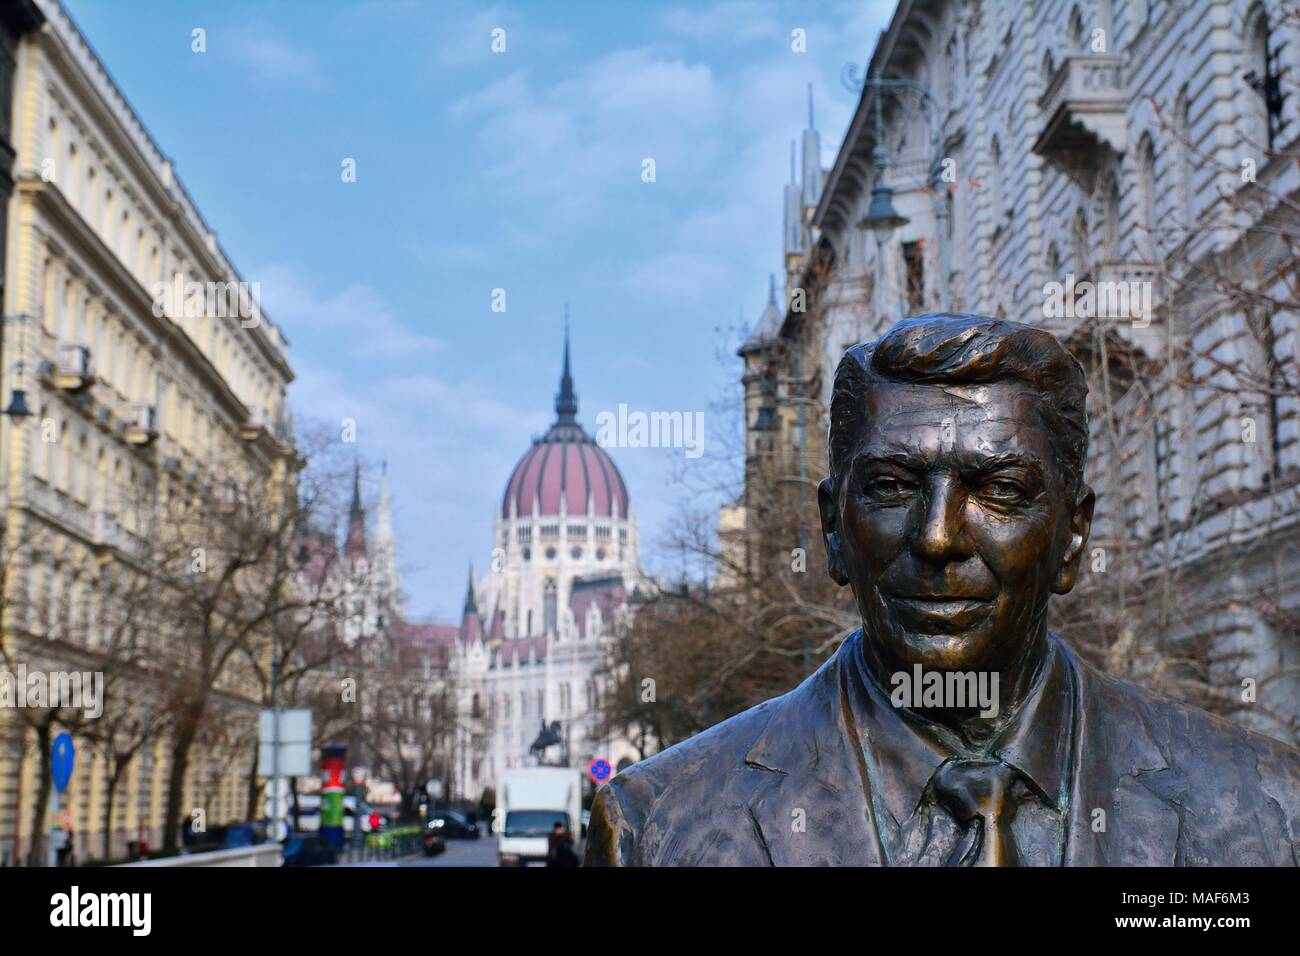 Budapest, Hungary - March 28, 2018: Statue of the former U.S. President Ronald Reagan on the background of Hungarian Parliament Building. Statue by sc Stock Photo